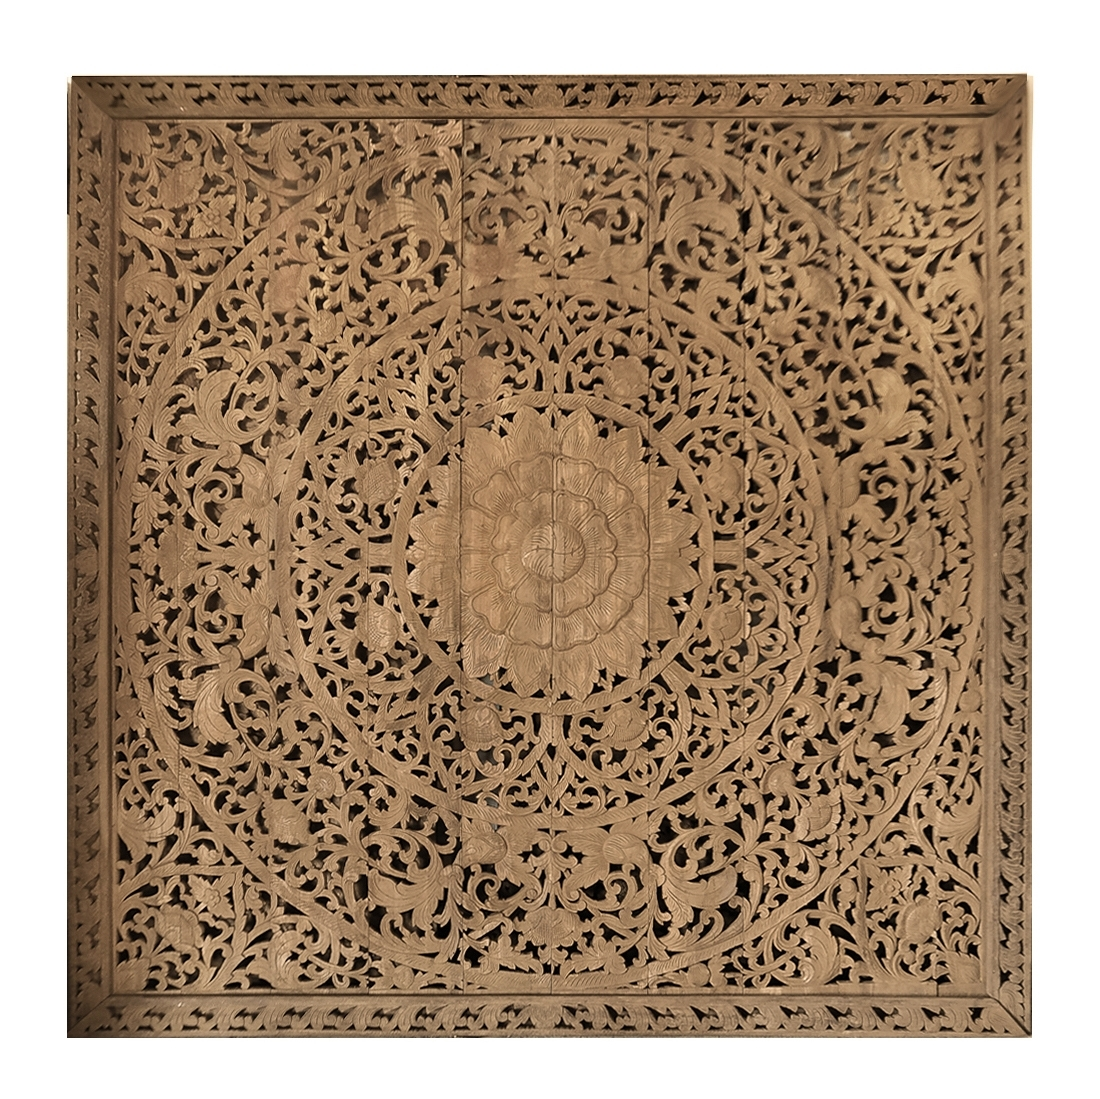 Buy Large Grand Carved Wooden Wall Art Or Ceiling Panel Online Throughout Newest Wooden Wall Art (Gallery 10 of 15)